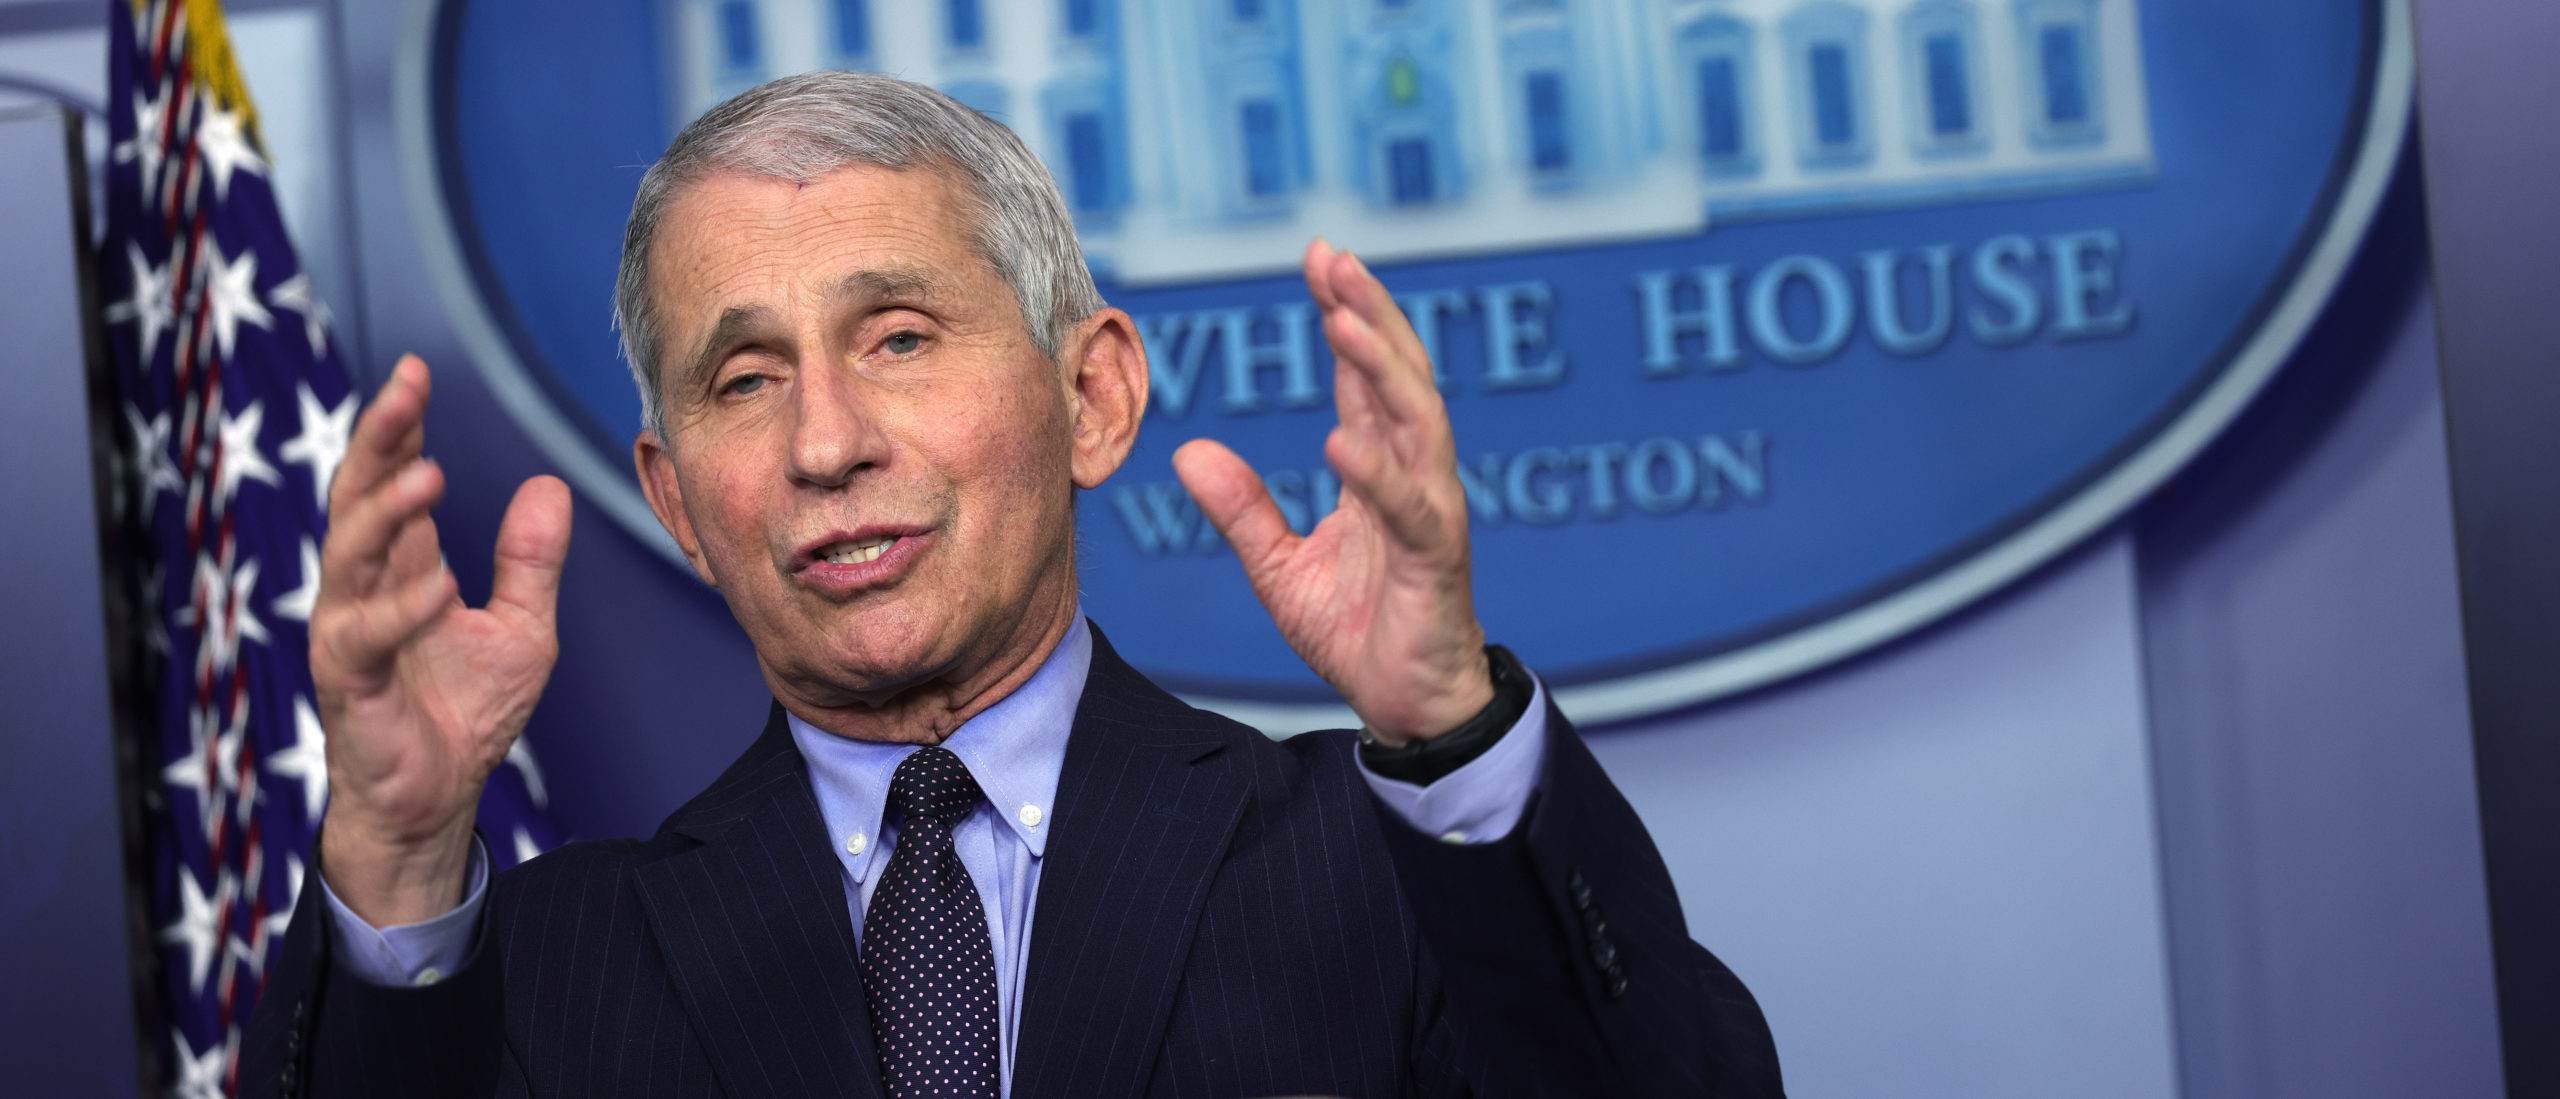 Dr. Anthony Fauci, Director of the National Institute of Allergy and Infectious Diseases, speaks during a White House press briefing, conducted by White House Press Secretary Jen Psaki, at the James Brady Press Briefing Room of the White House January 21, 2021. (Photo by Alex Wong/Getty Images)